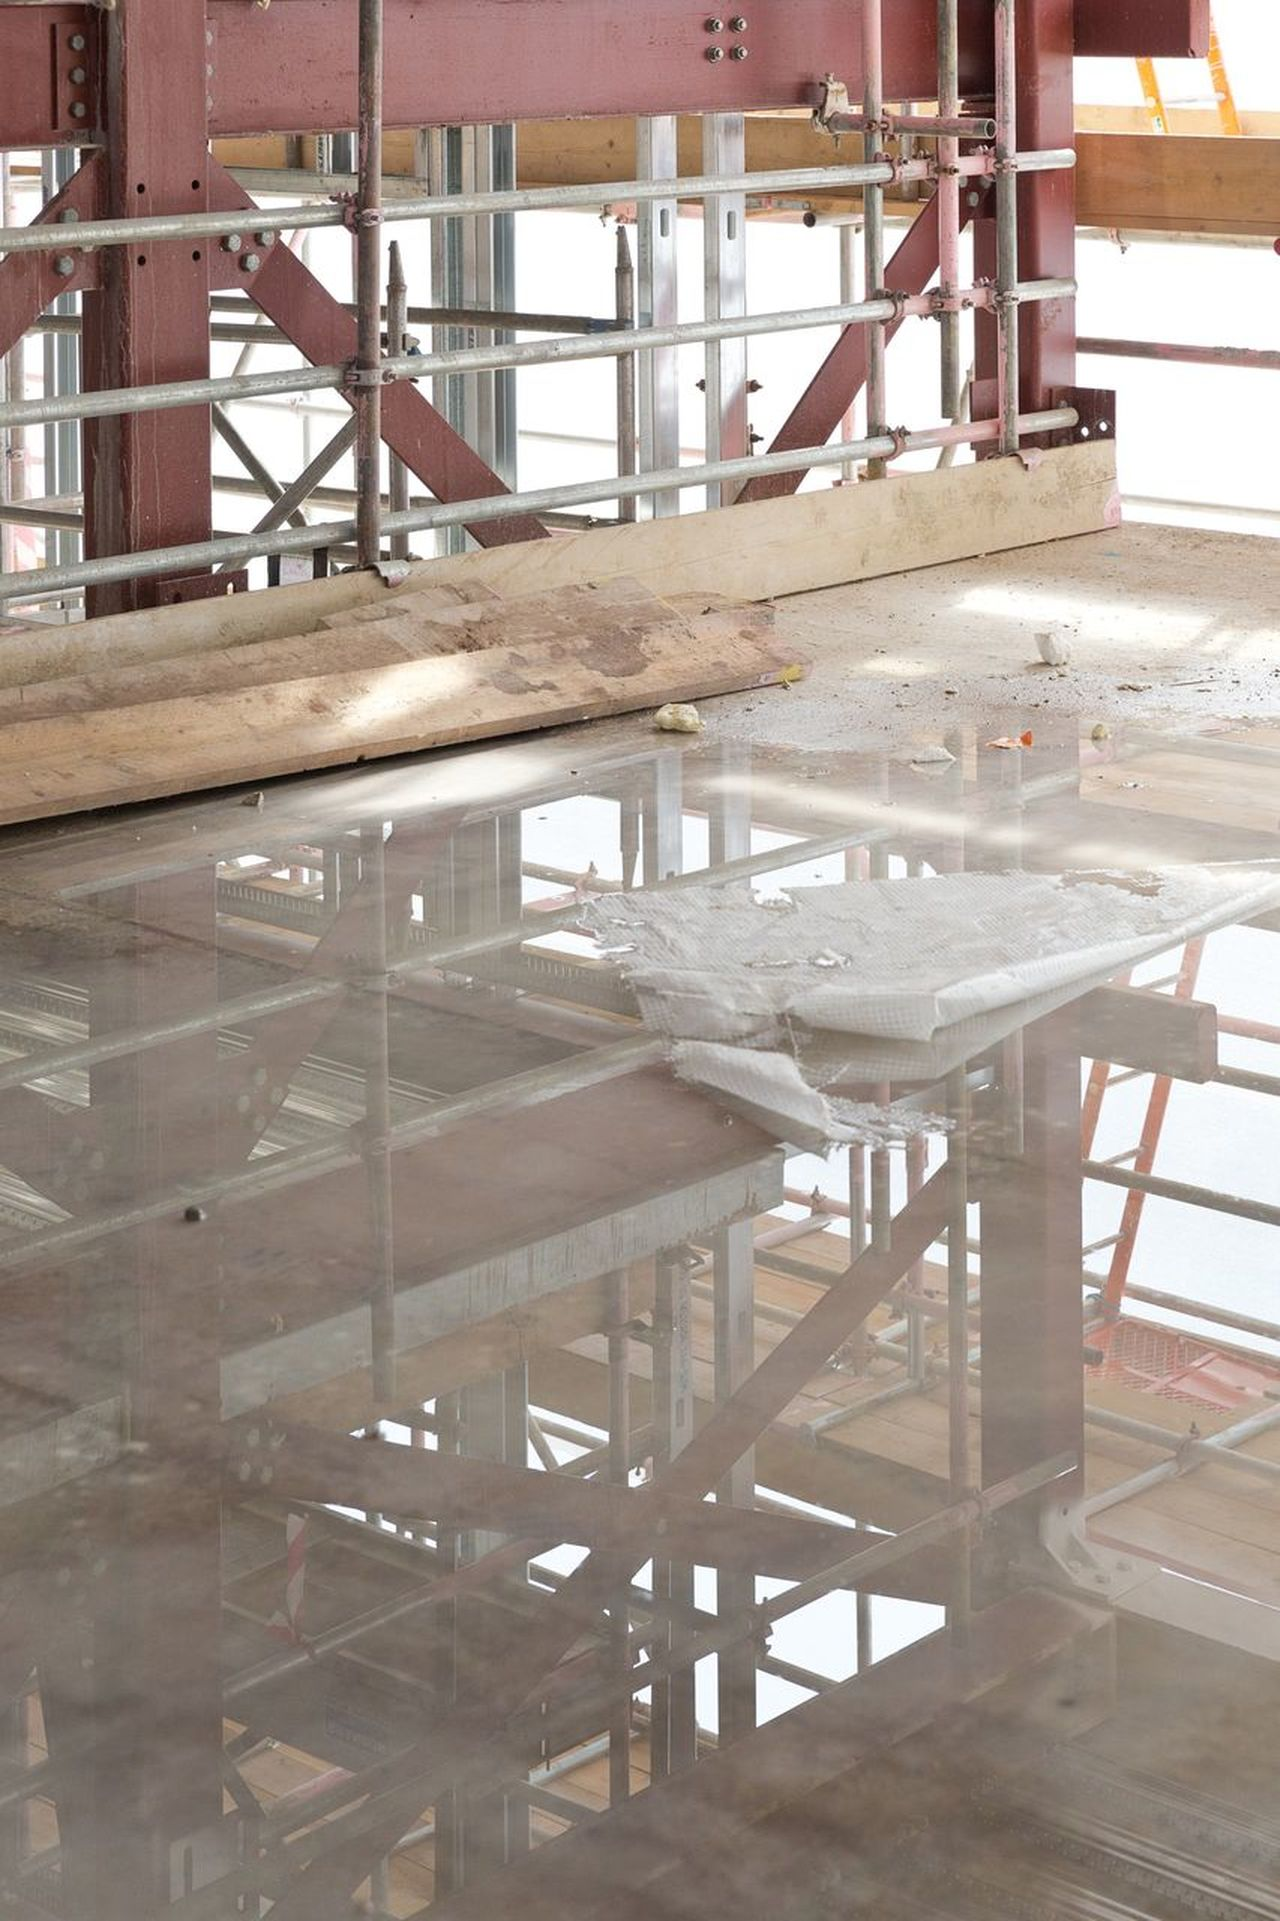 Construction Site Architectural Feature Architecture Architecture_collection Architecturelovers Building Buildings Close-up Construction Construction Industry Construction Site Construction Work Day Indoors  Interior Design No People Reflection Reflection_collection Reflections Table Water